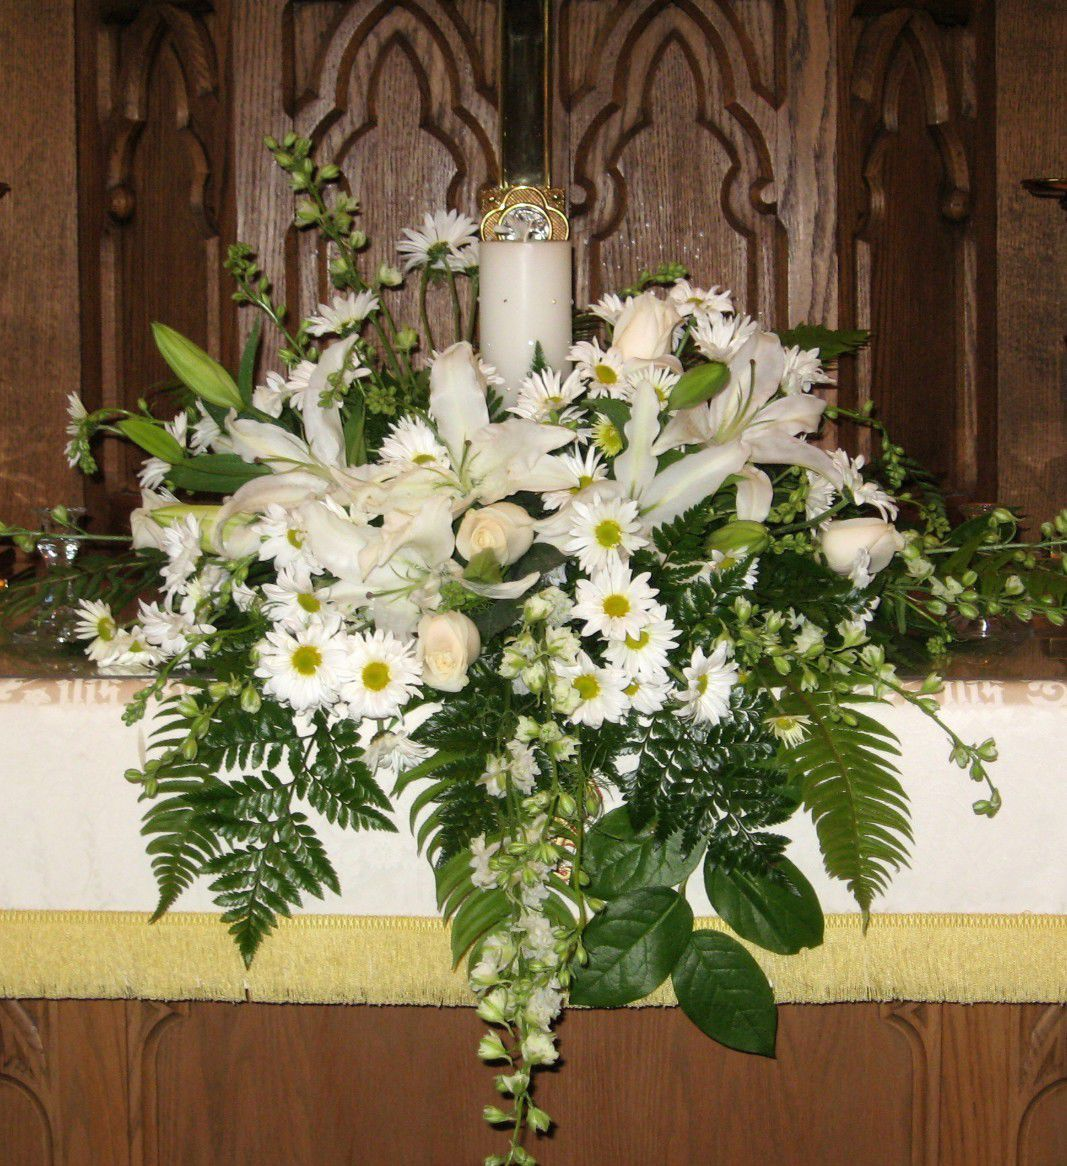 Wedding Flower Arrangements For Church: Unity Candle Altar Arrangement